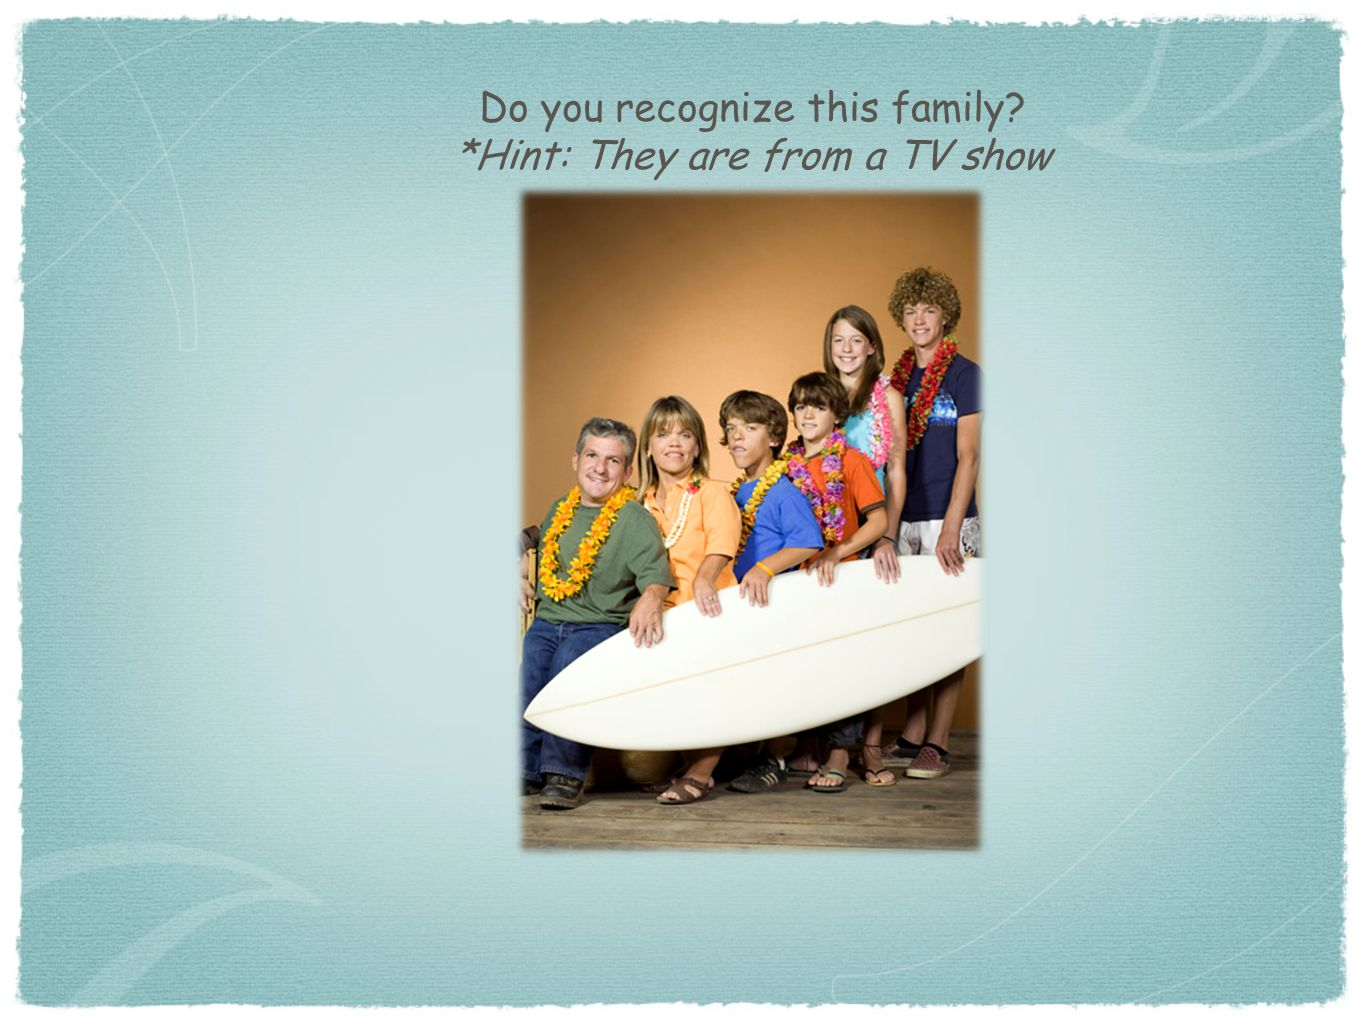 Do you recognize this family *Hint: They are from a TV show